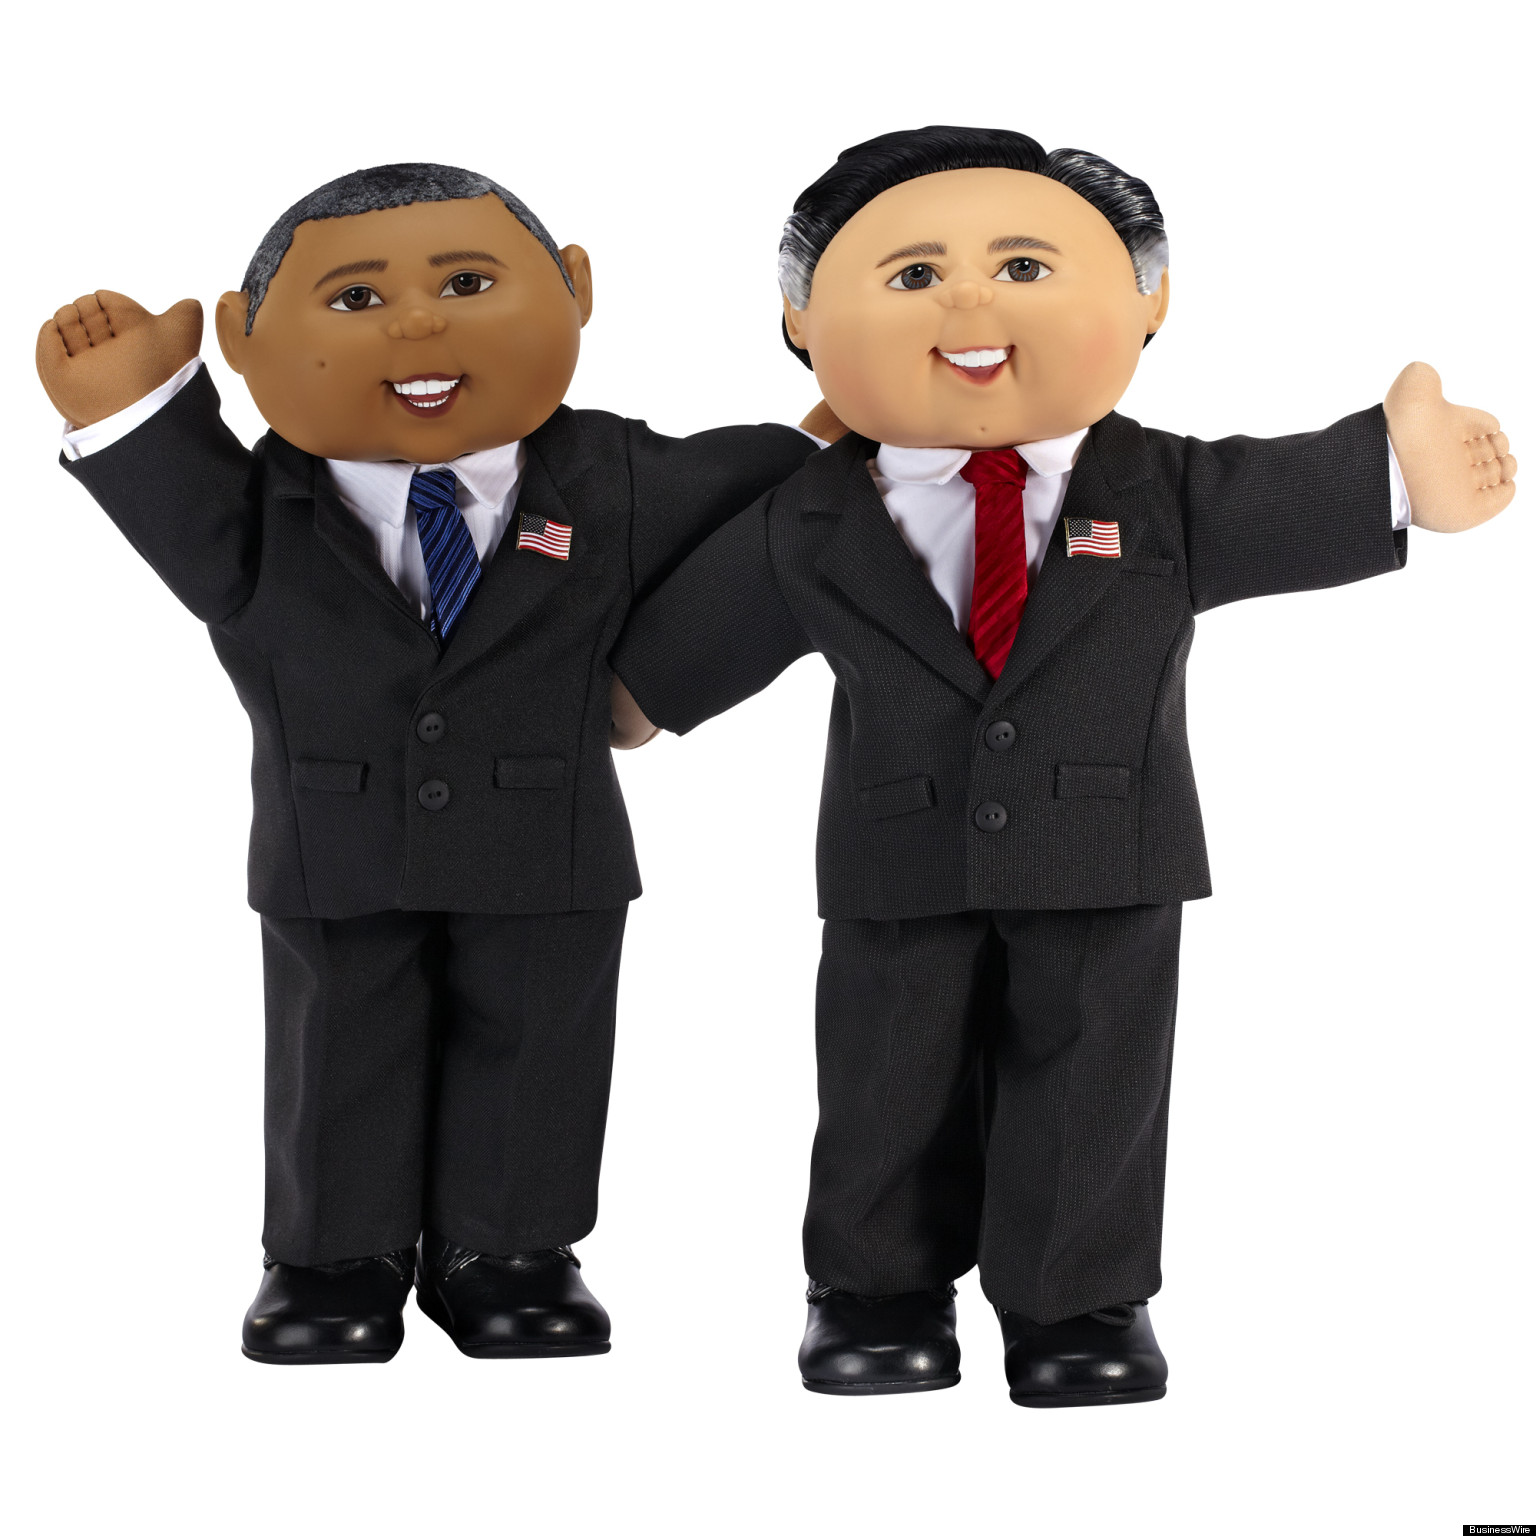 Barack obama and michelle obama as cabbage patch dolls | crazy.